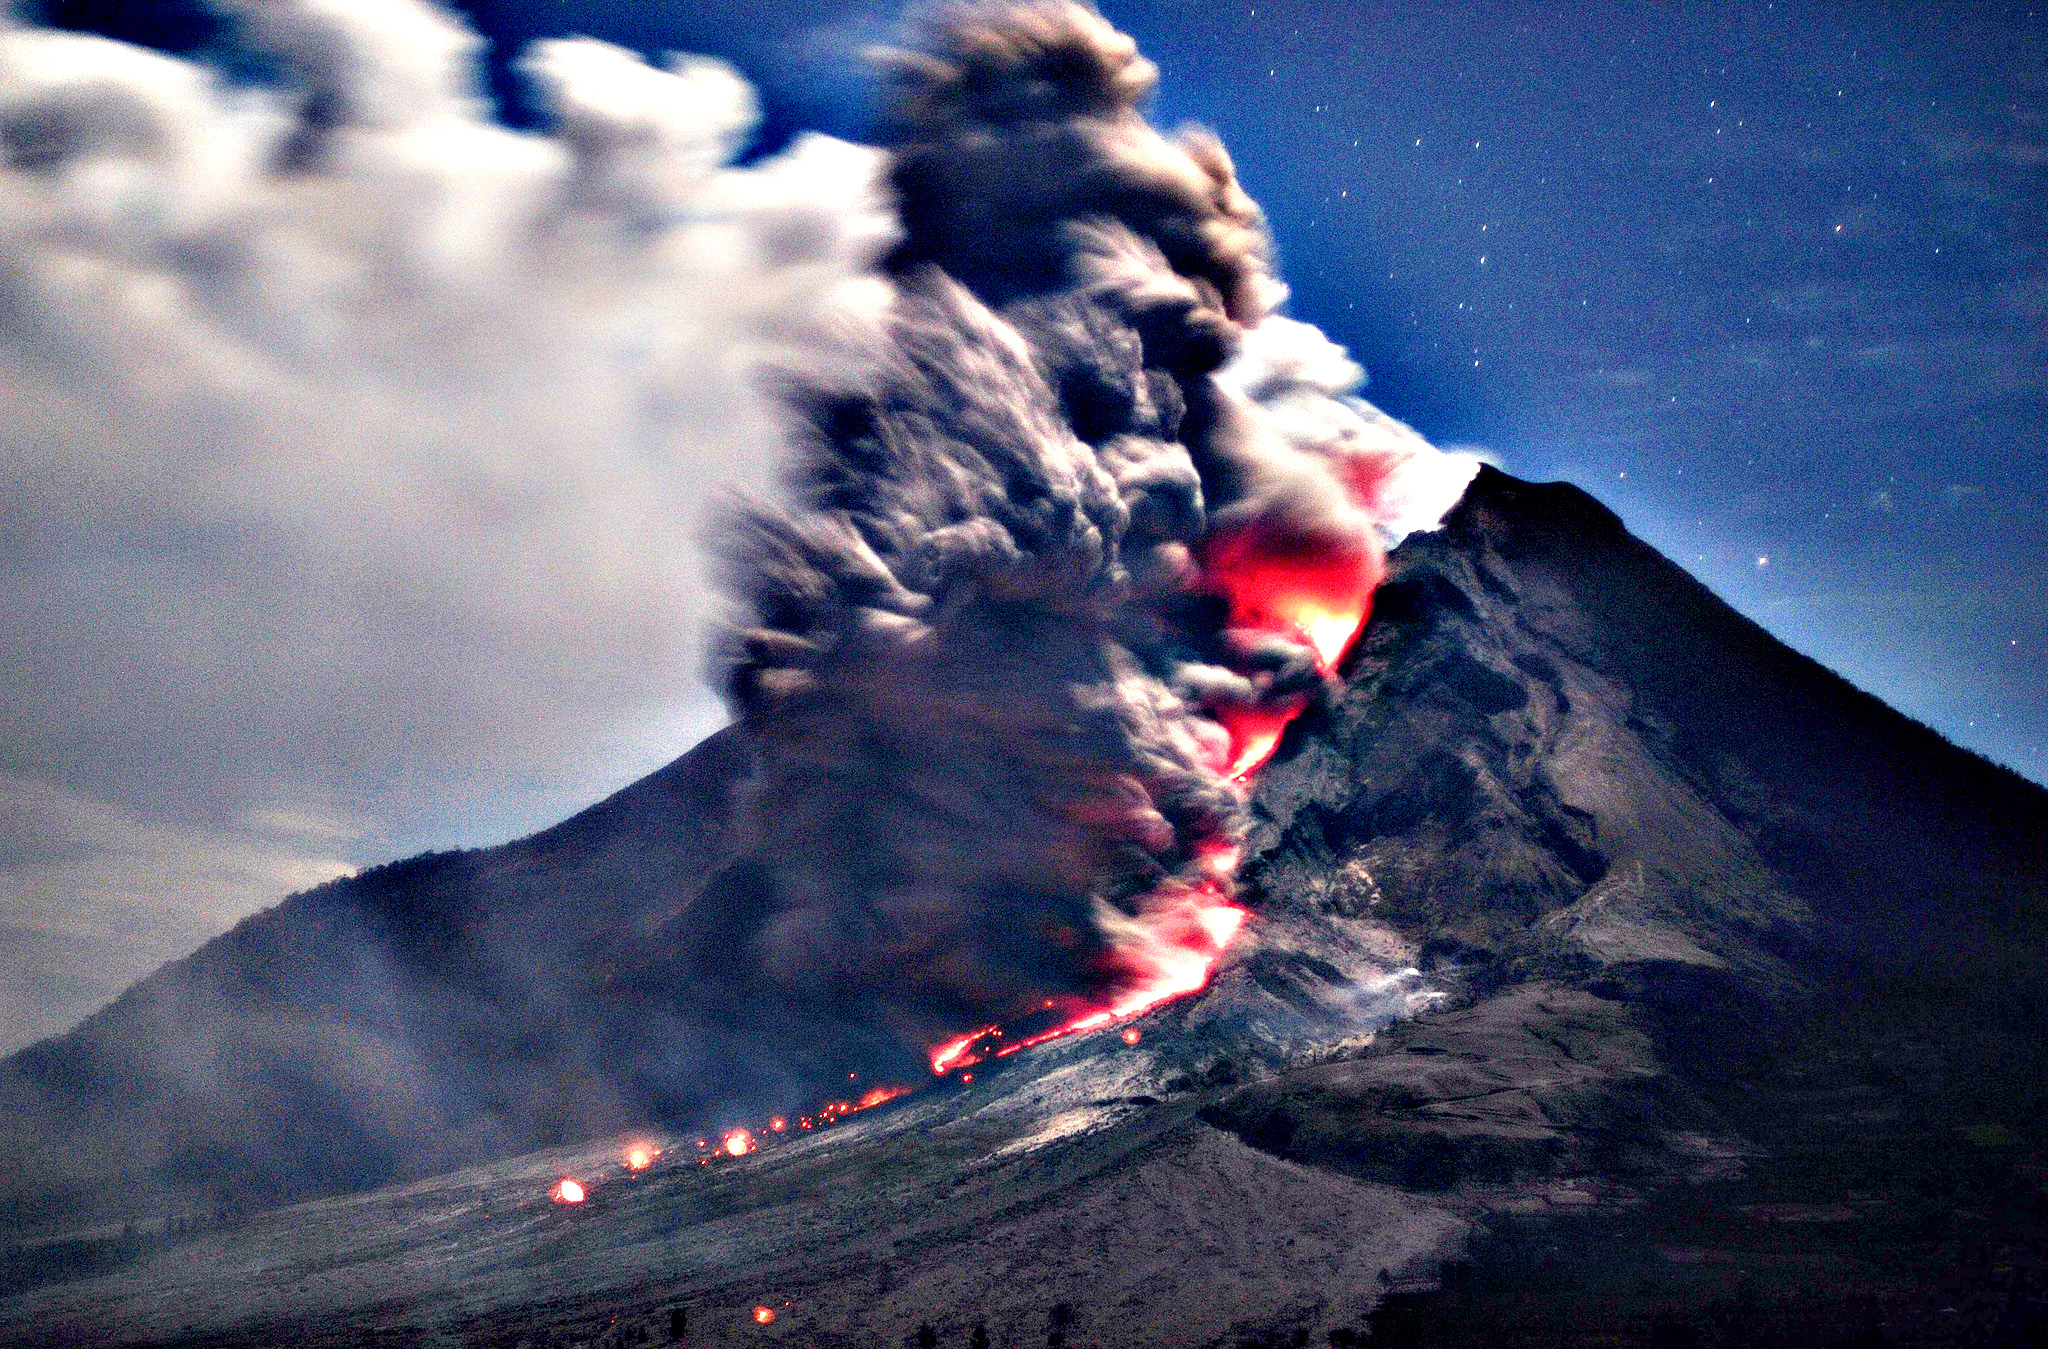 Indonesian men watch Mount Sinabung spewing volcanic materials during an eruption in Tiga Kicat, North Sumatra, Indonesia, Friday, Jan. 3, 2014. The 2,600-meter (8,530-foot) volcano has sporadically erupted since September.